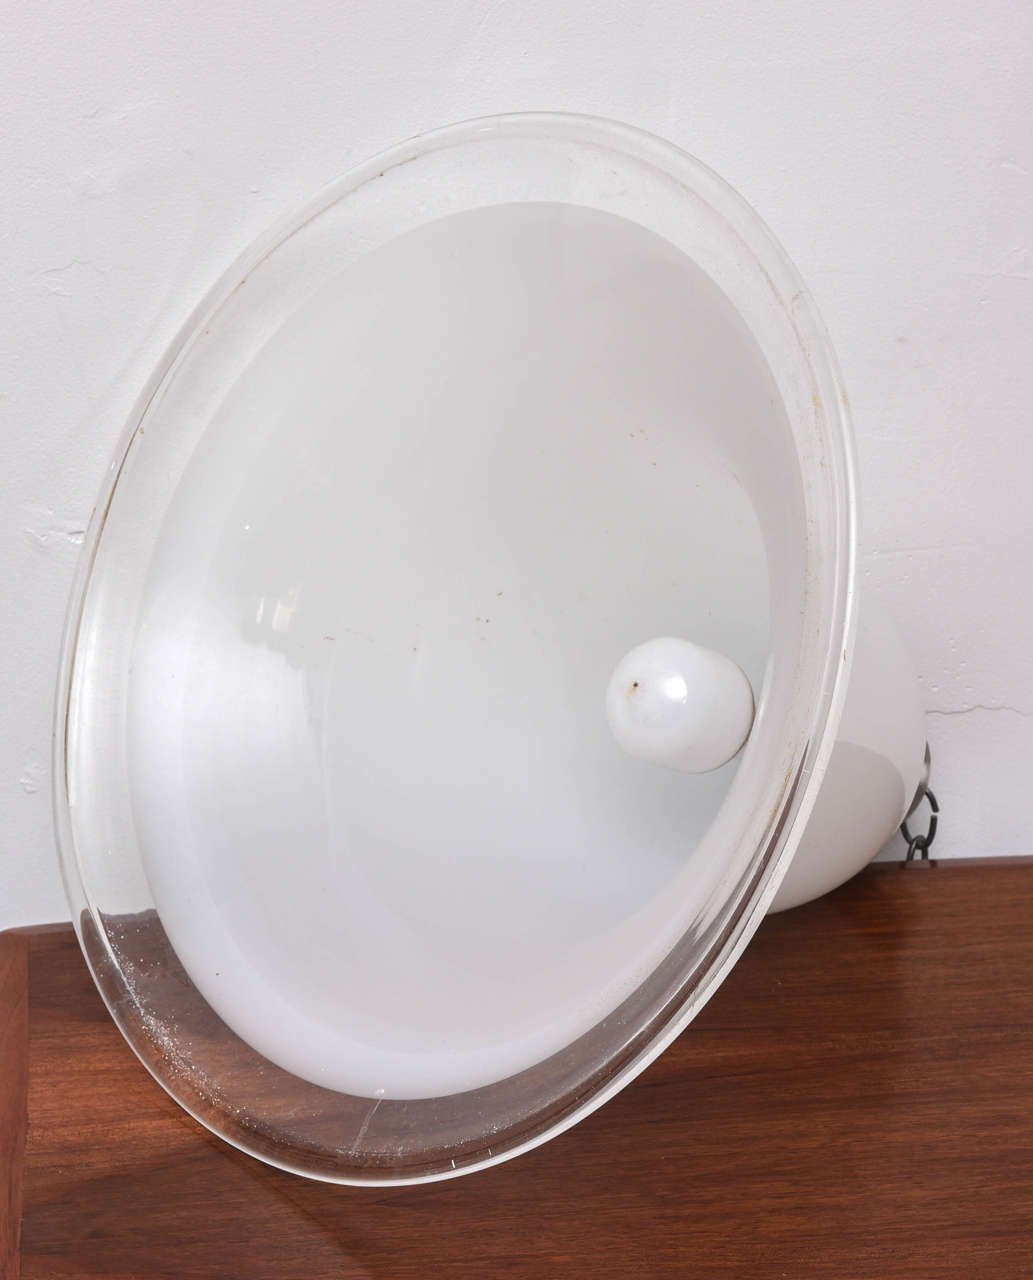 Glass Murano Vintage Overhead Bank Lamp from 1940s Italy For Sale